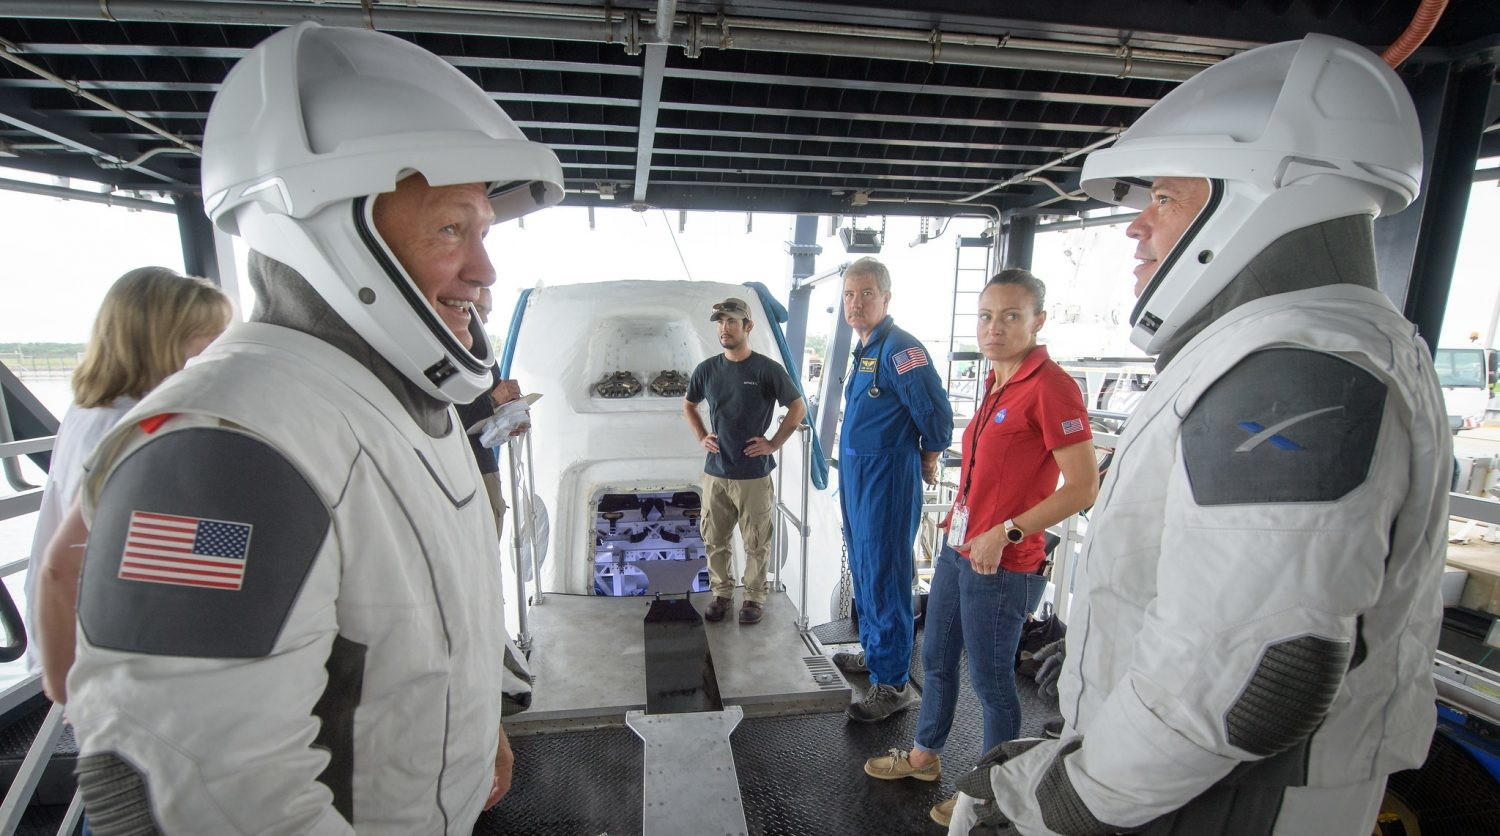 NASA astronauts Doug Hurley (left) and Bob Behnken during crew extraction rehearsals from the SpaceX Crew Dragon, 13 August 2019 at Cape Canaveral, Florida. Credit: (NASA/Bill Ingalls)